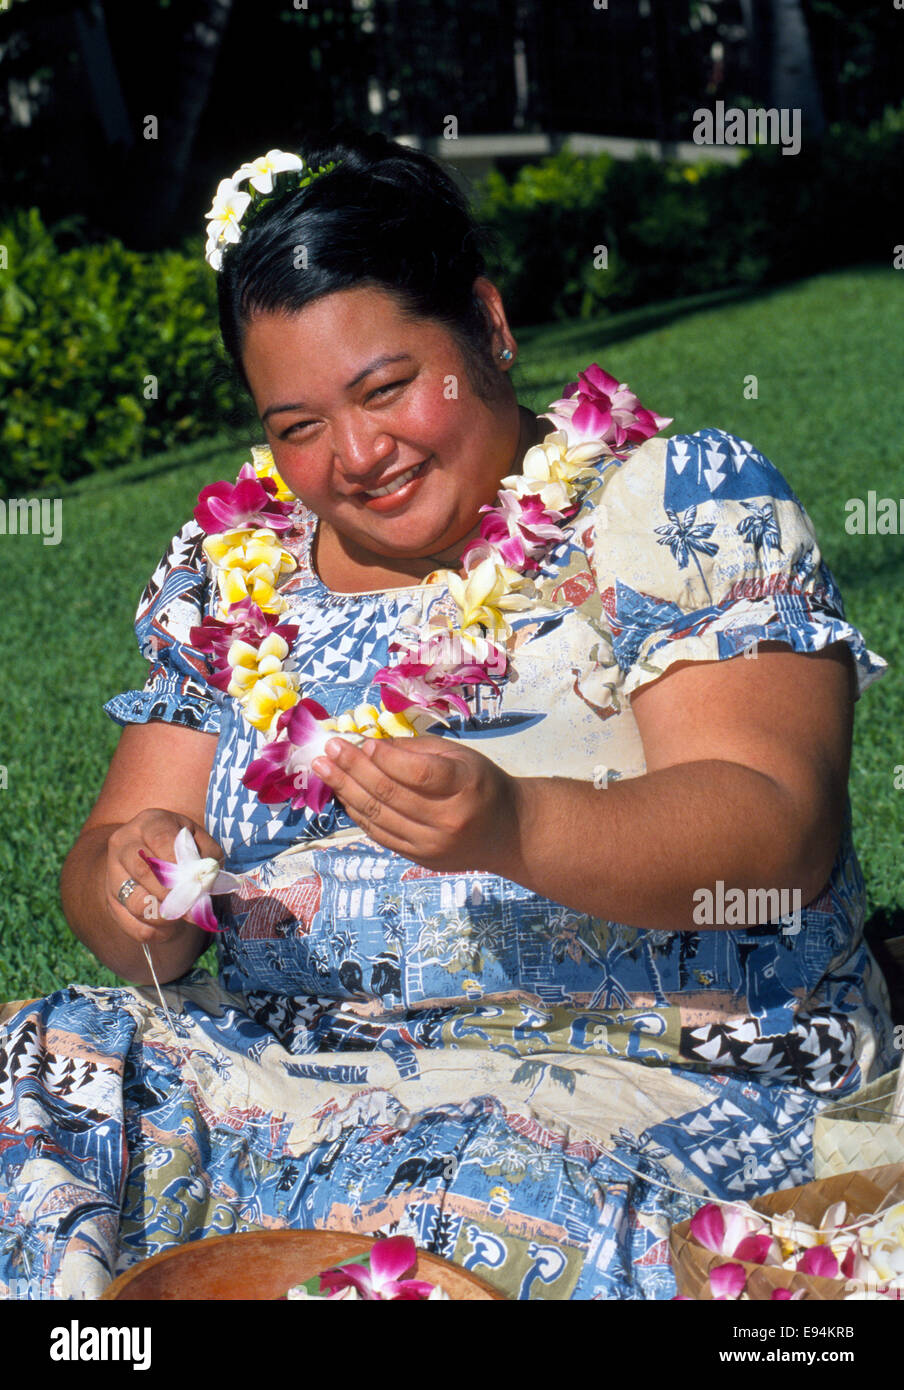 A smiling Hawaiian woman in Honolulu, Hawaii, USA, makes traditional leis with plumeria (frangipani) flowers outdoors Stock Photo